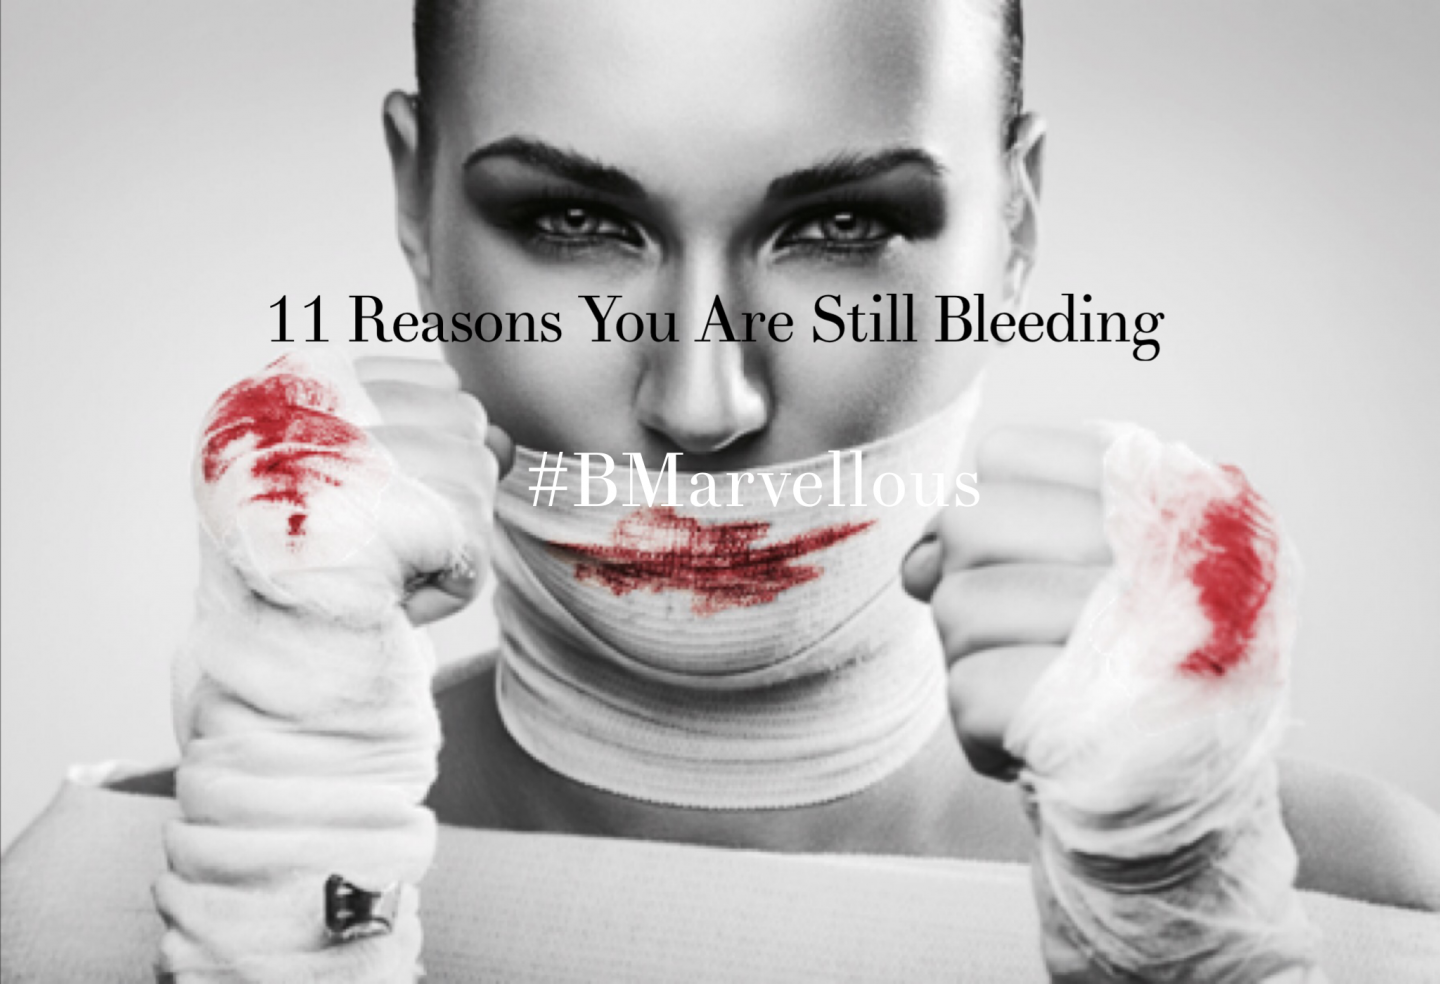 11 Reasons You Are Still Bleeding